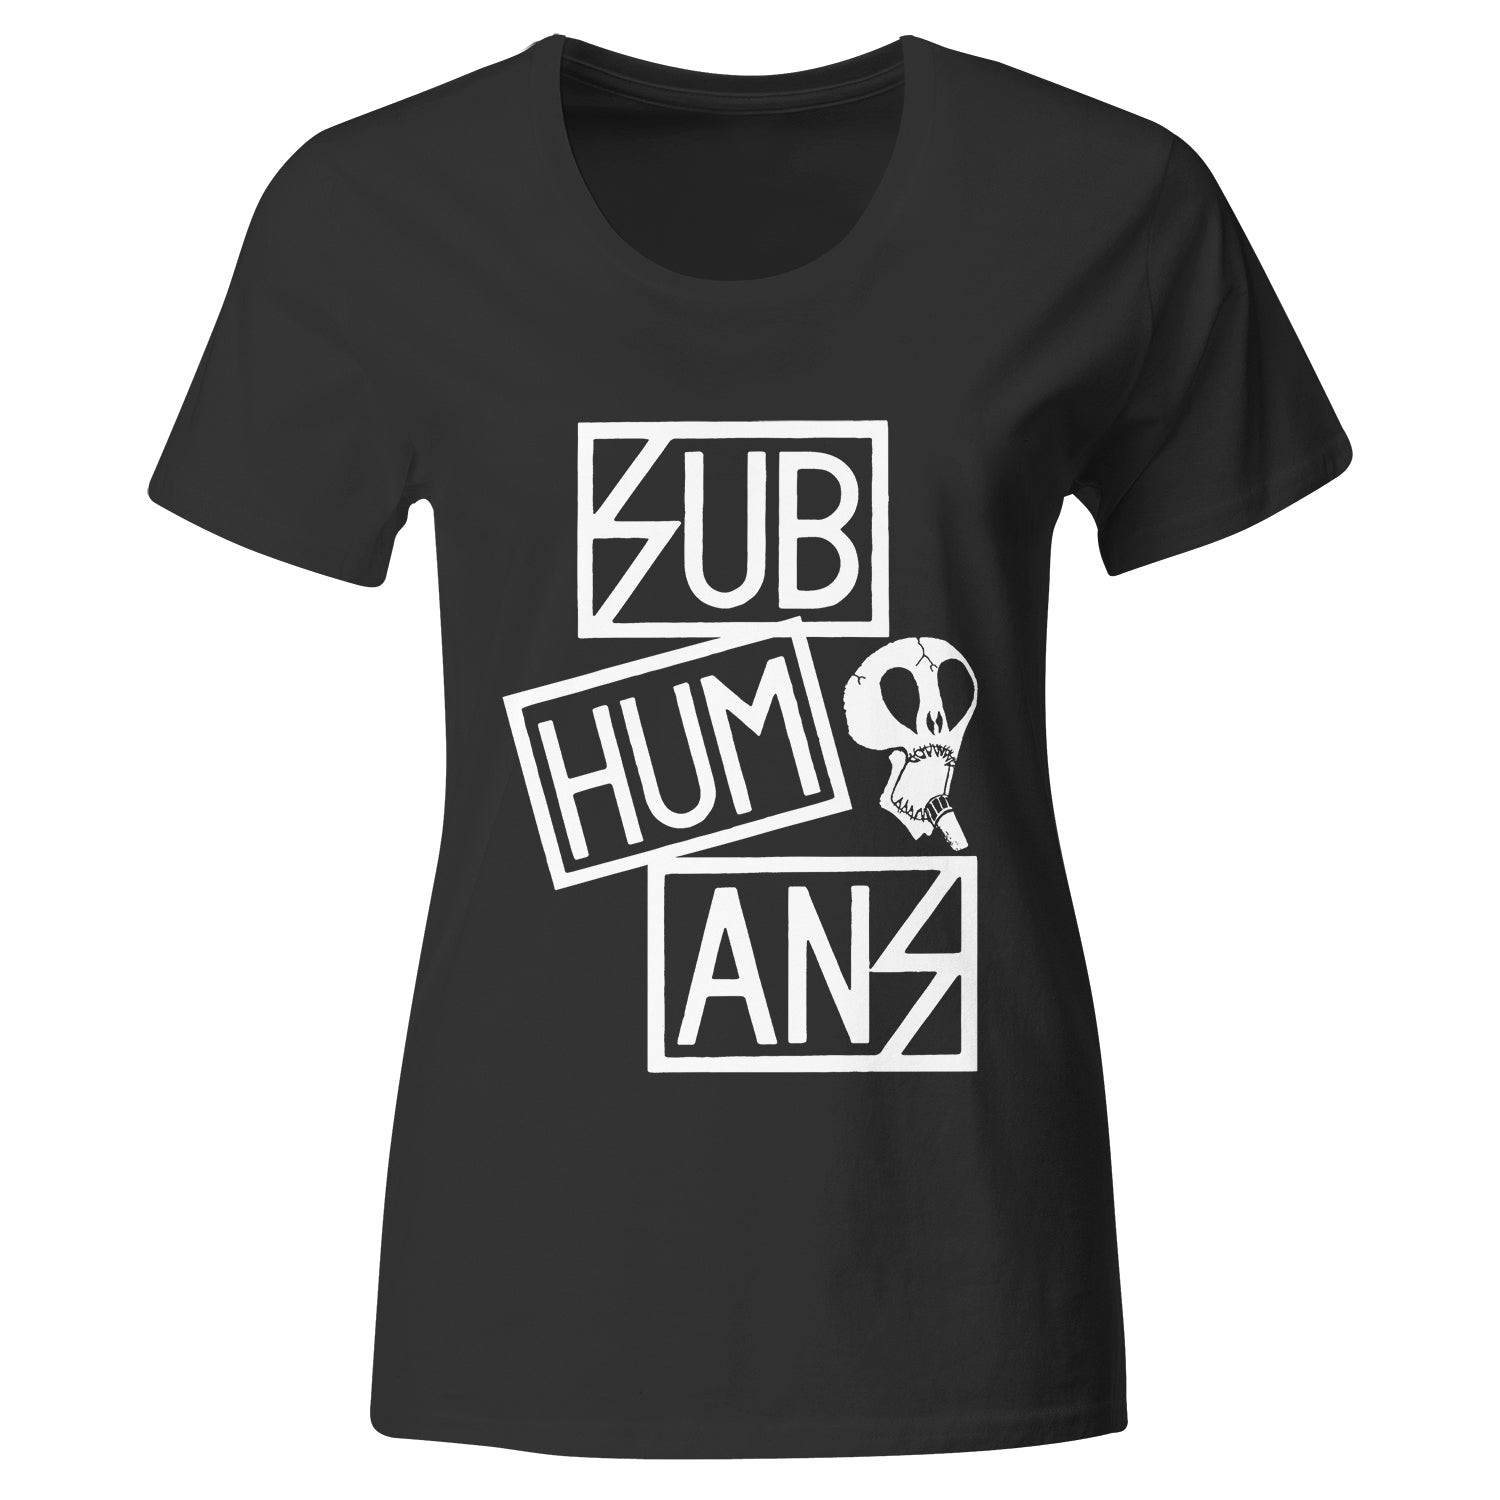 Subhumans - Small Skull & Three Part Logo - Black - T-shirt - Fitted